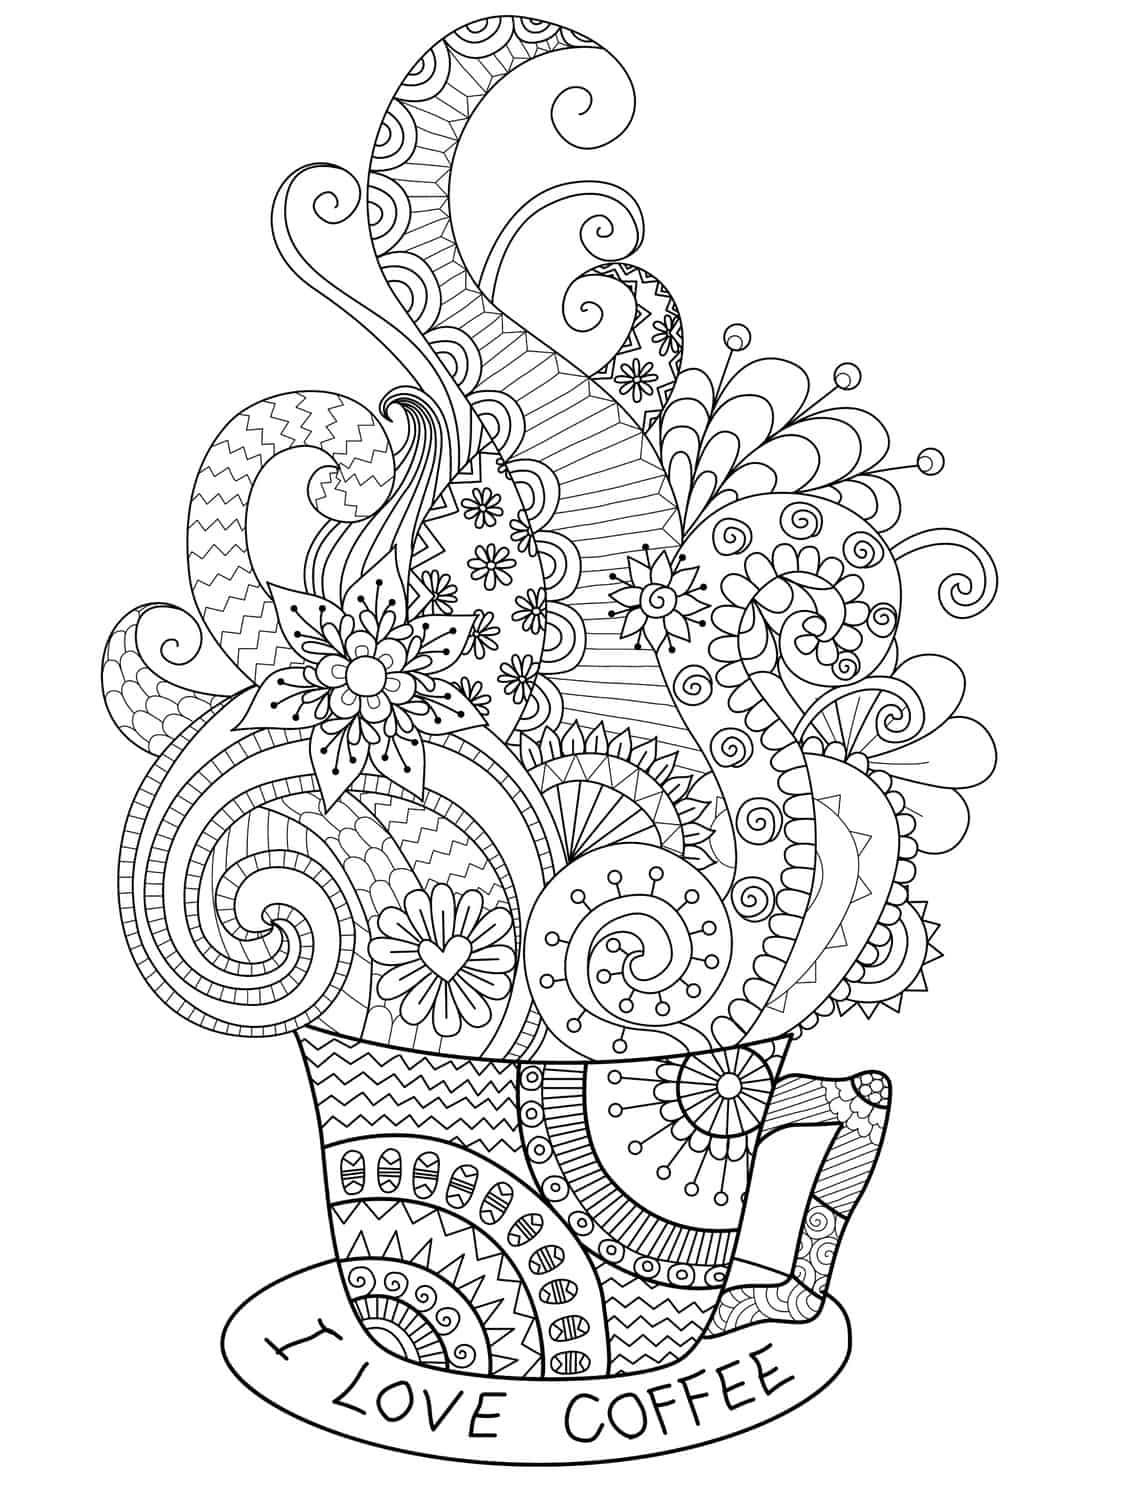 adult love coloring pages - 20 gorgeous free printable adult coloring pages page 10